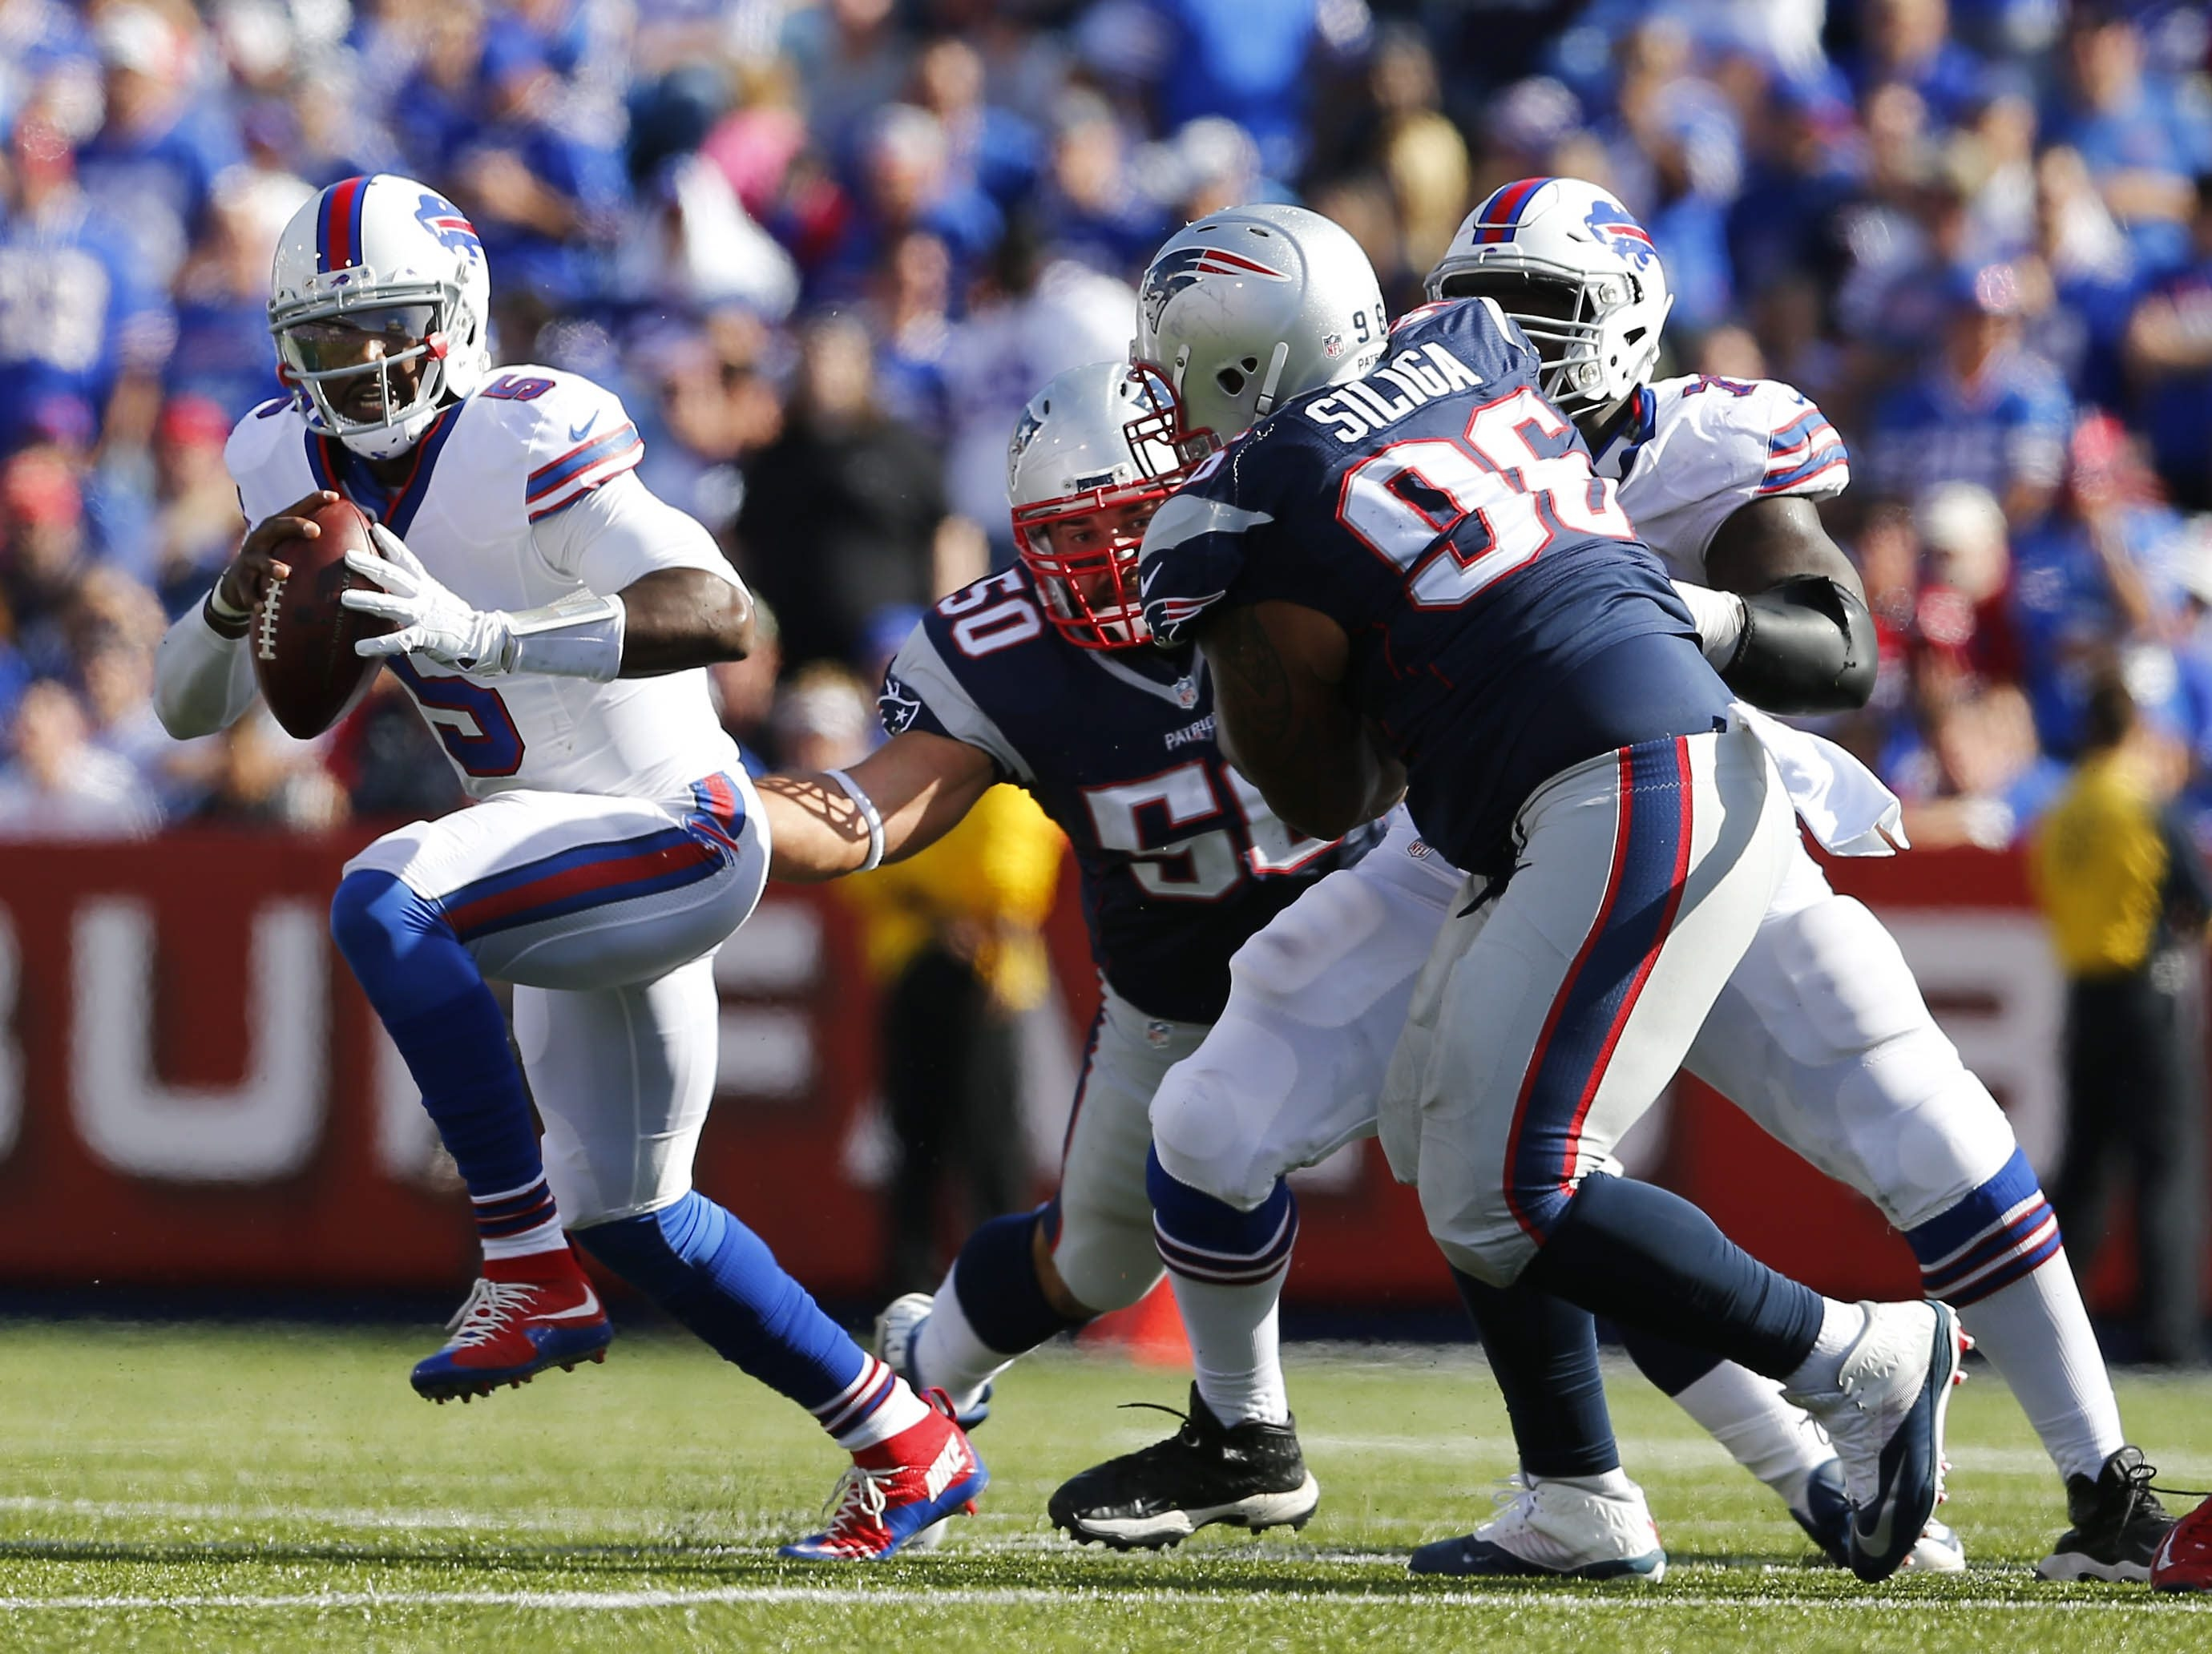 Buffalo Bills Tyrod Taylor is flushed from the pocket during the fourth quarter at Ralph Wilson Stadium in Orchard Park, N.Y. on Sunday, Sept. 20, 2015.     (Mark Mulville/Buffalo News)